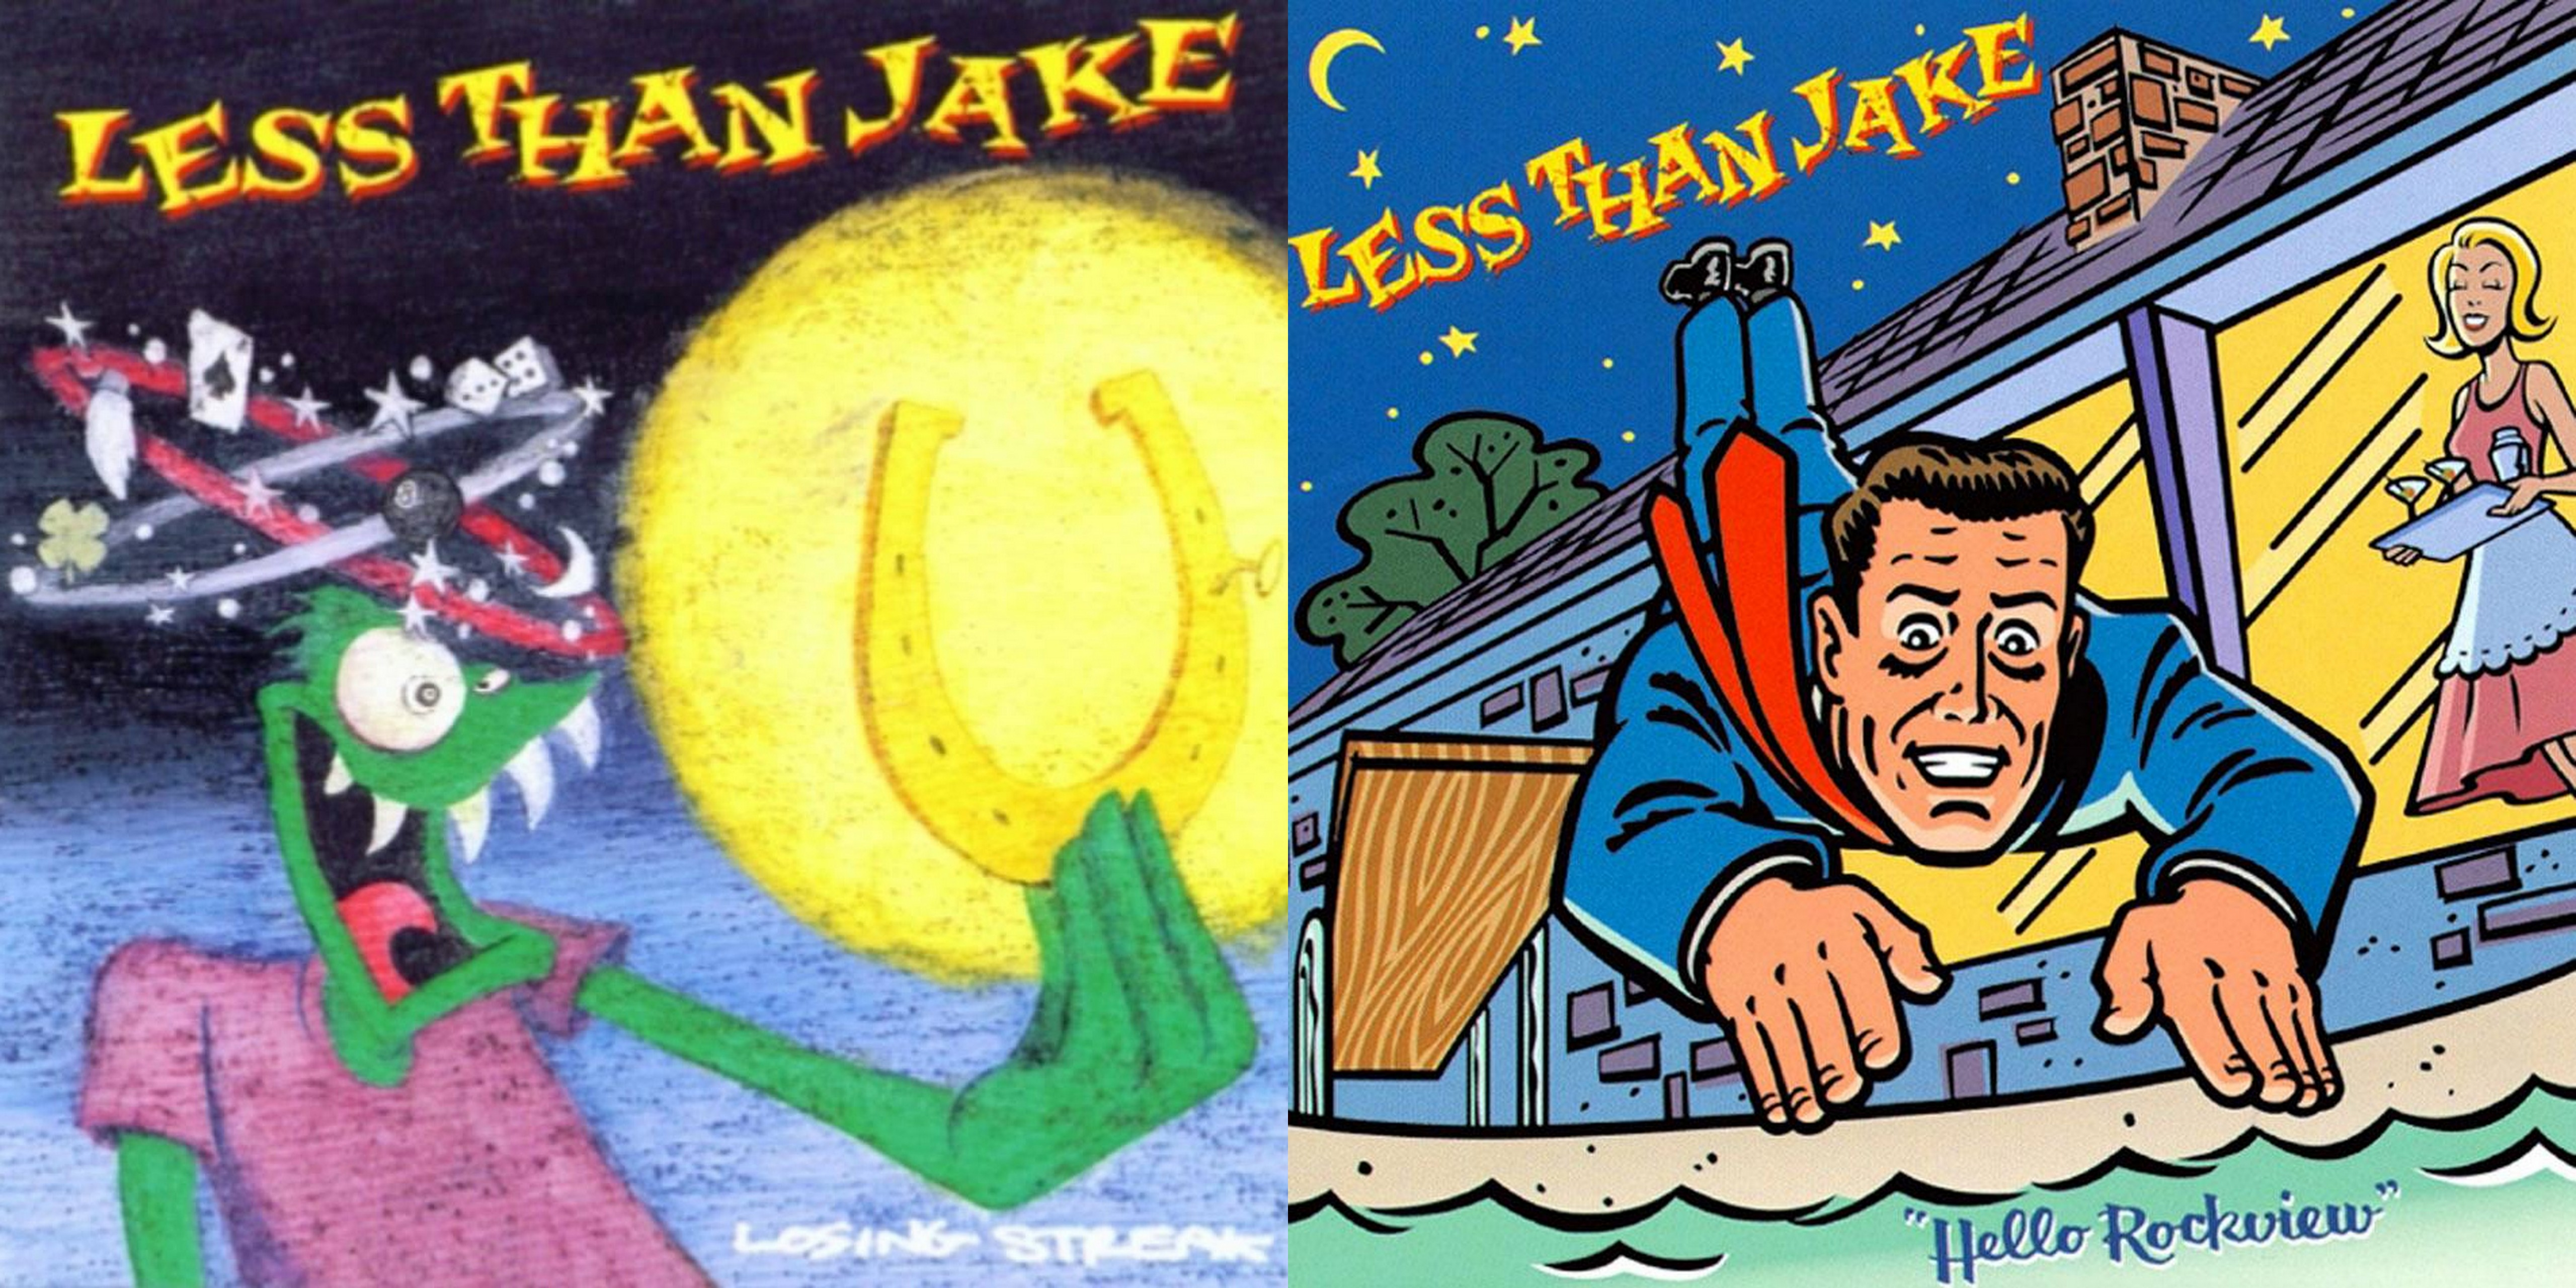 Less Than Jake Repress Popular 90s Records on Vinyl